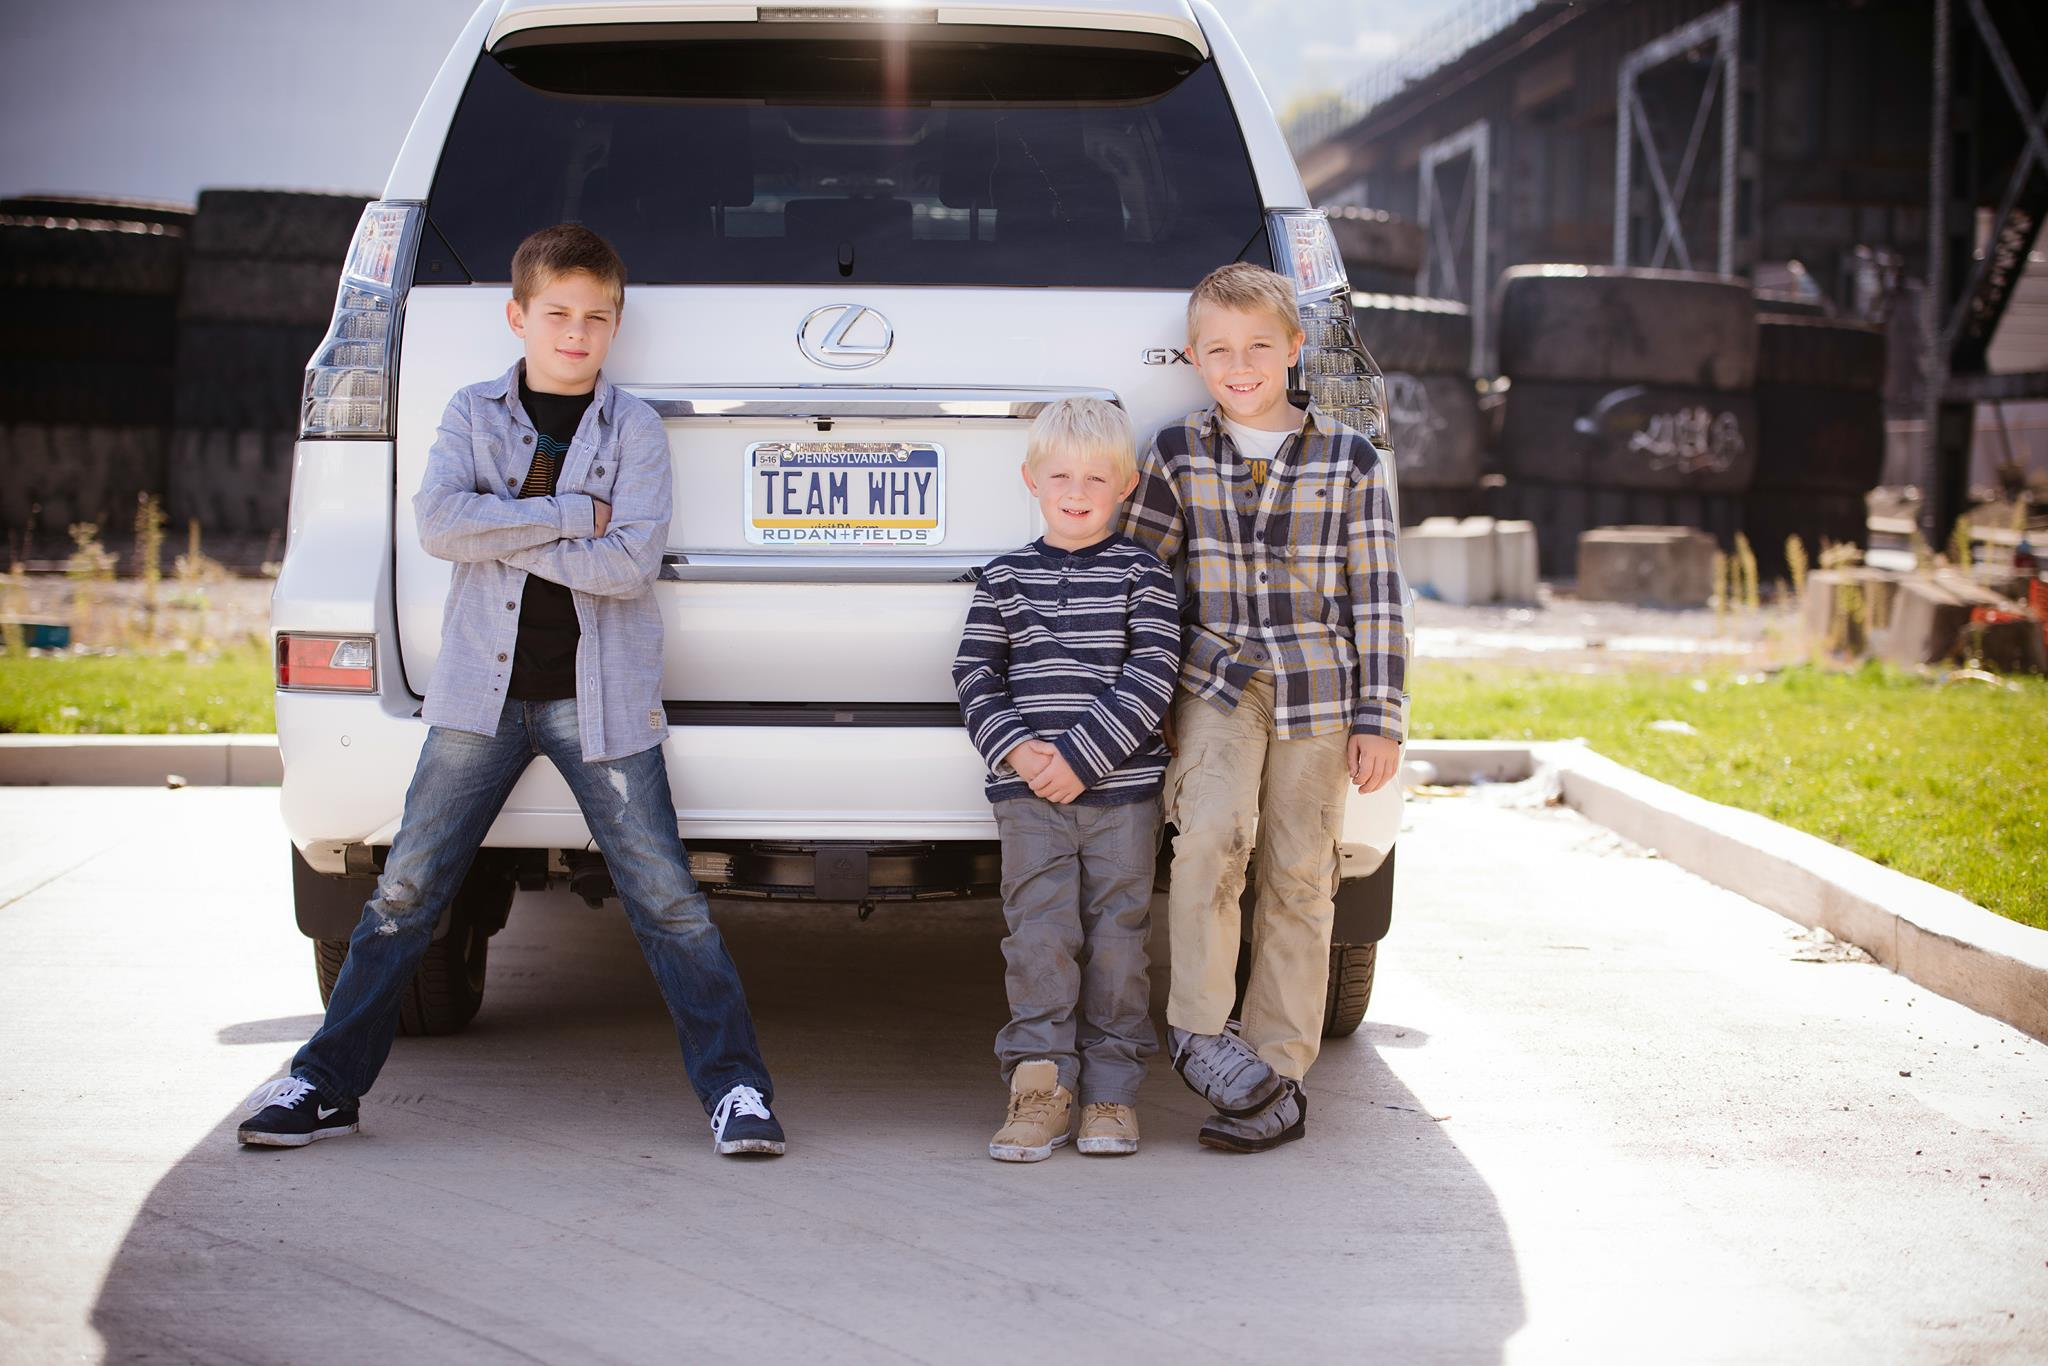 For Heather Shields, being a Rodan + Fields Independent Consultant has meant more time with her three sons.